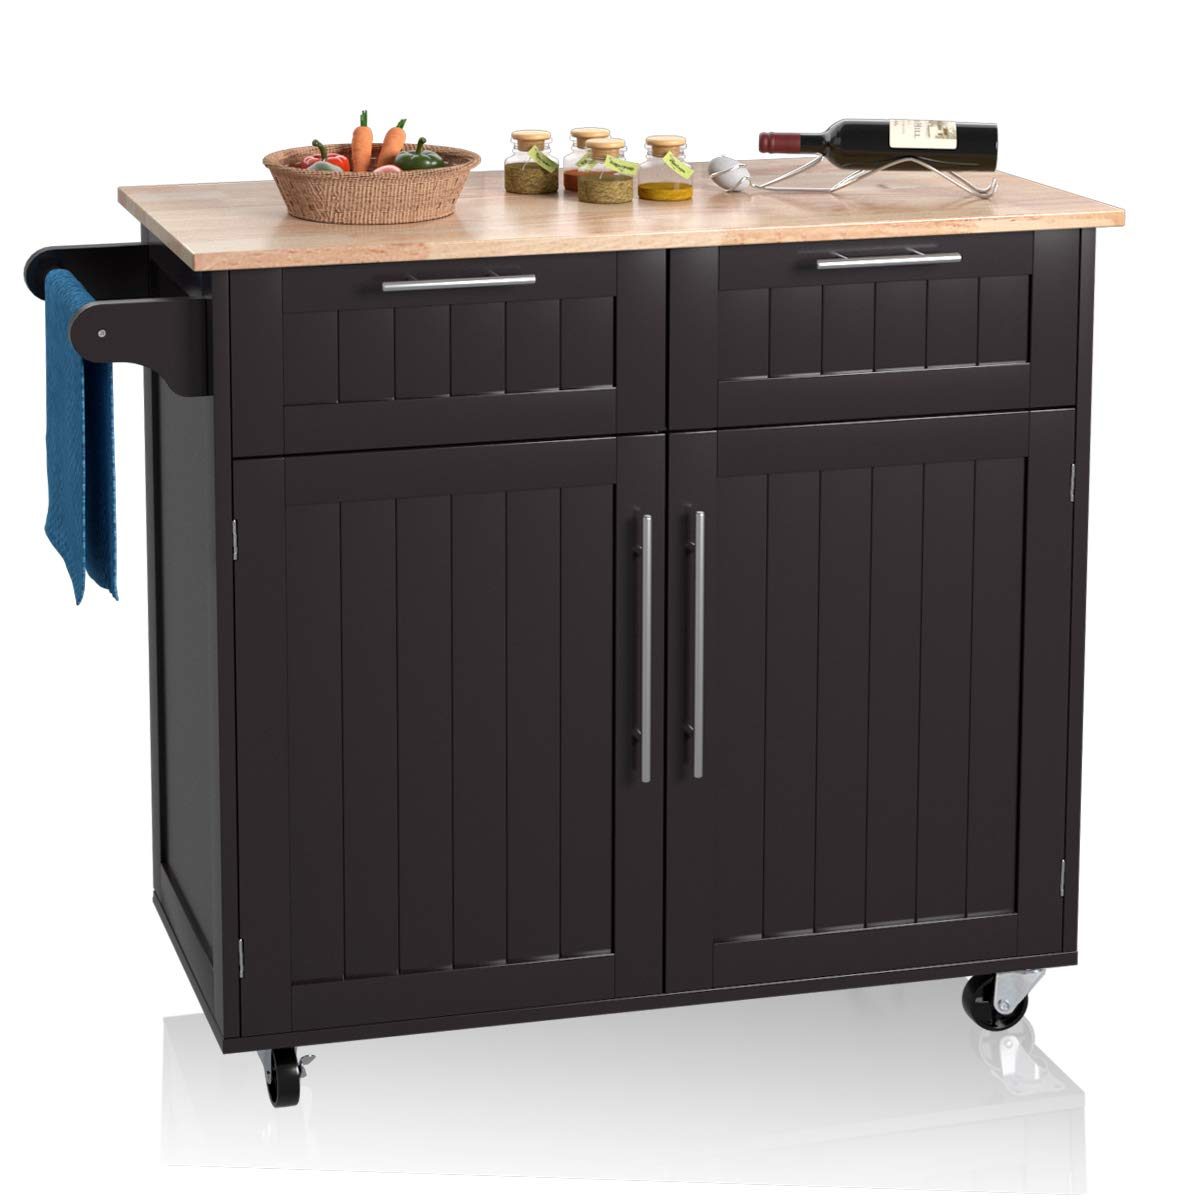 Giantex Kitchen Island Cart Rolling Storage Trolley Cart Home And Restaurant Serving Utility Cart With Drawers Cabinet Towel Rack And Wood Top